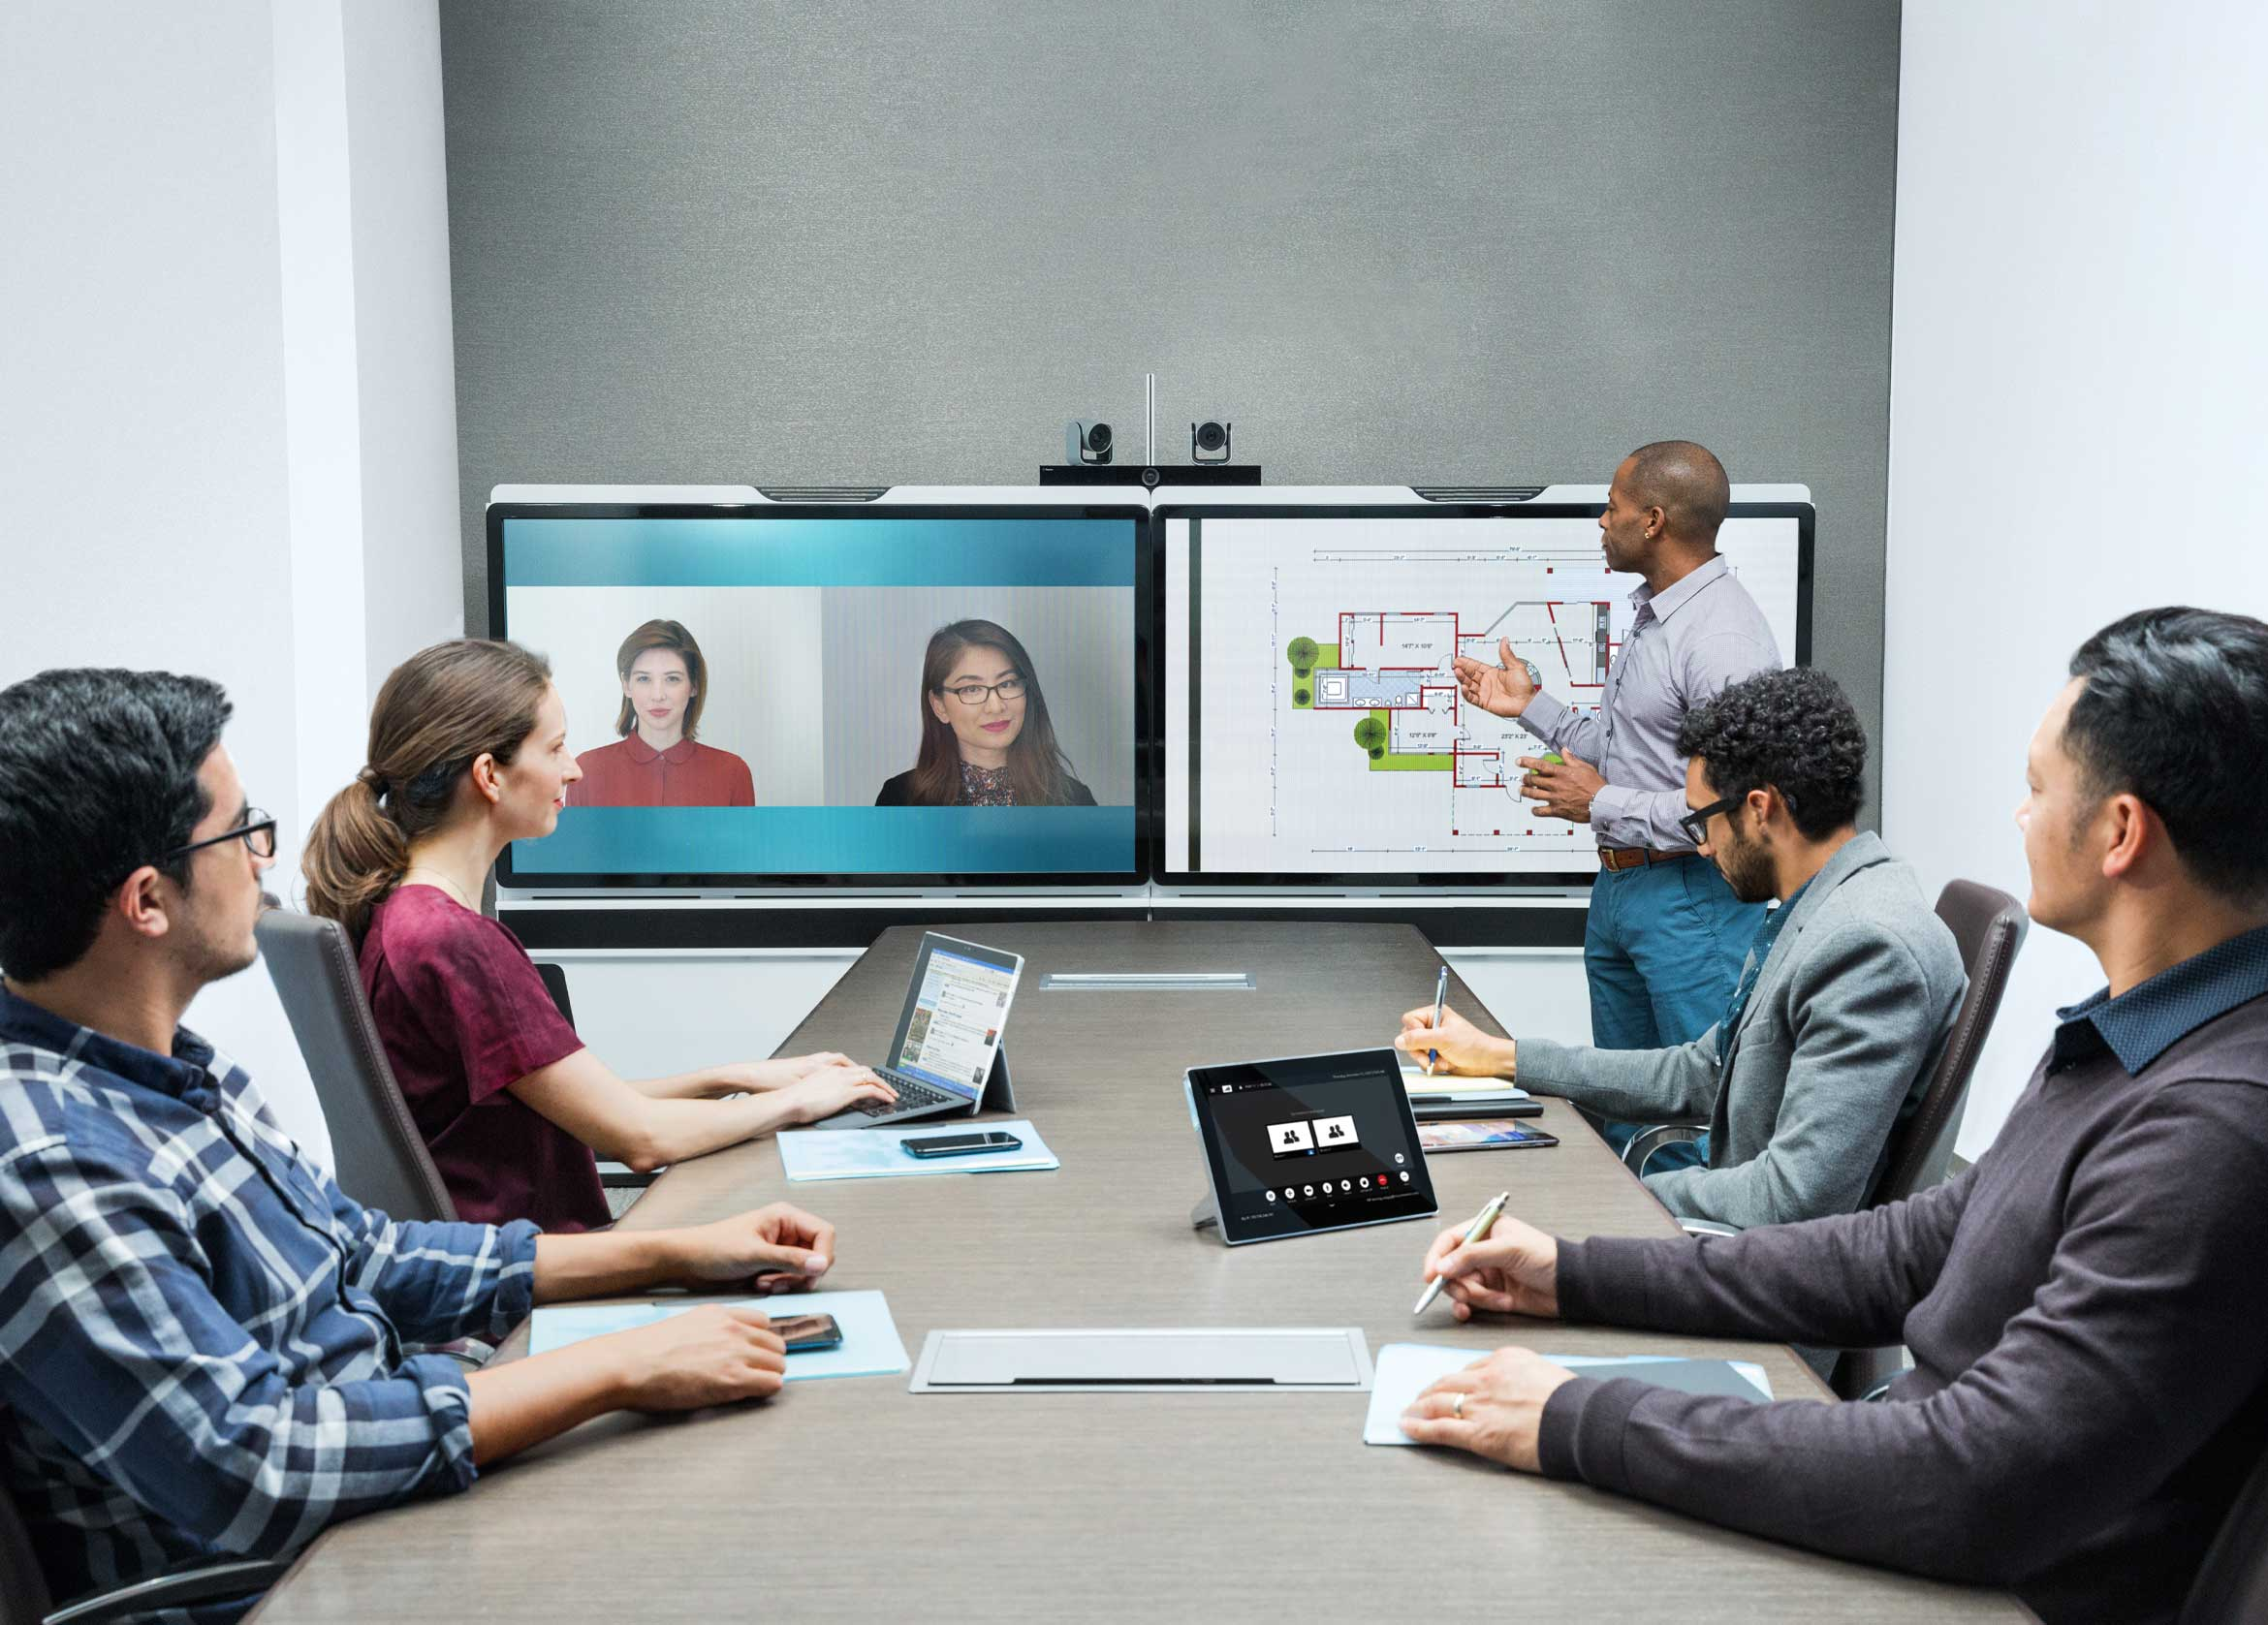 Video Conference interpreting